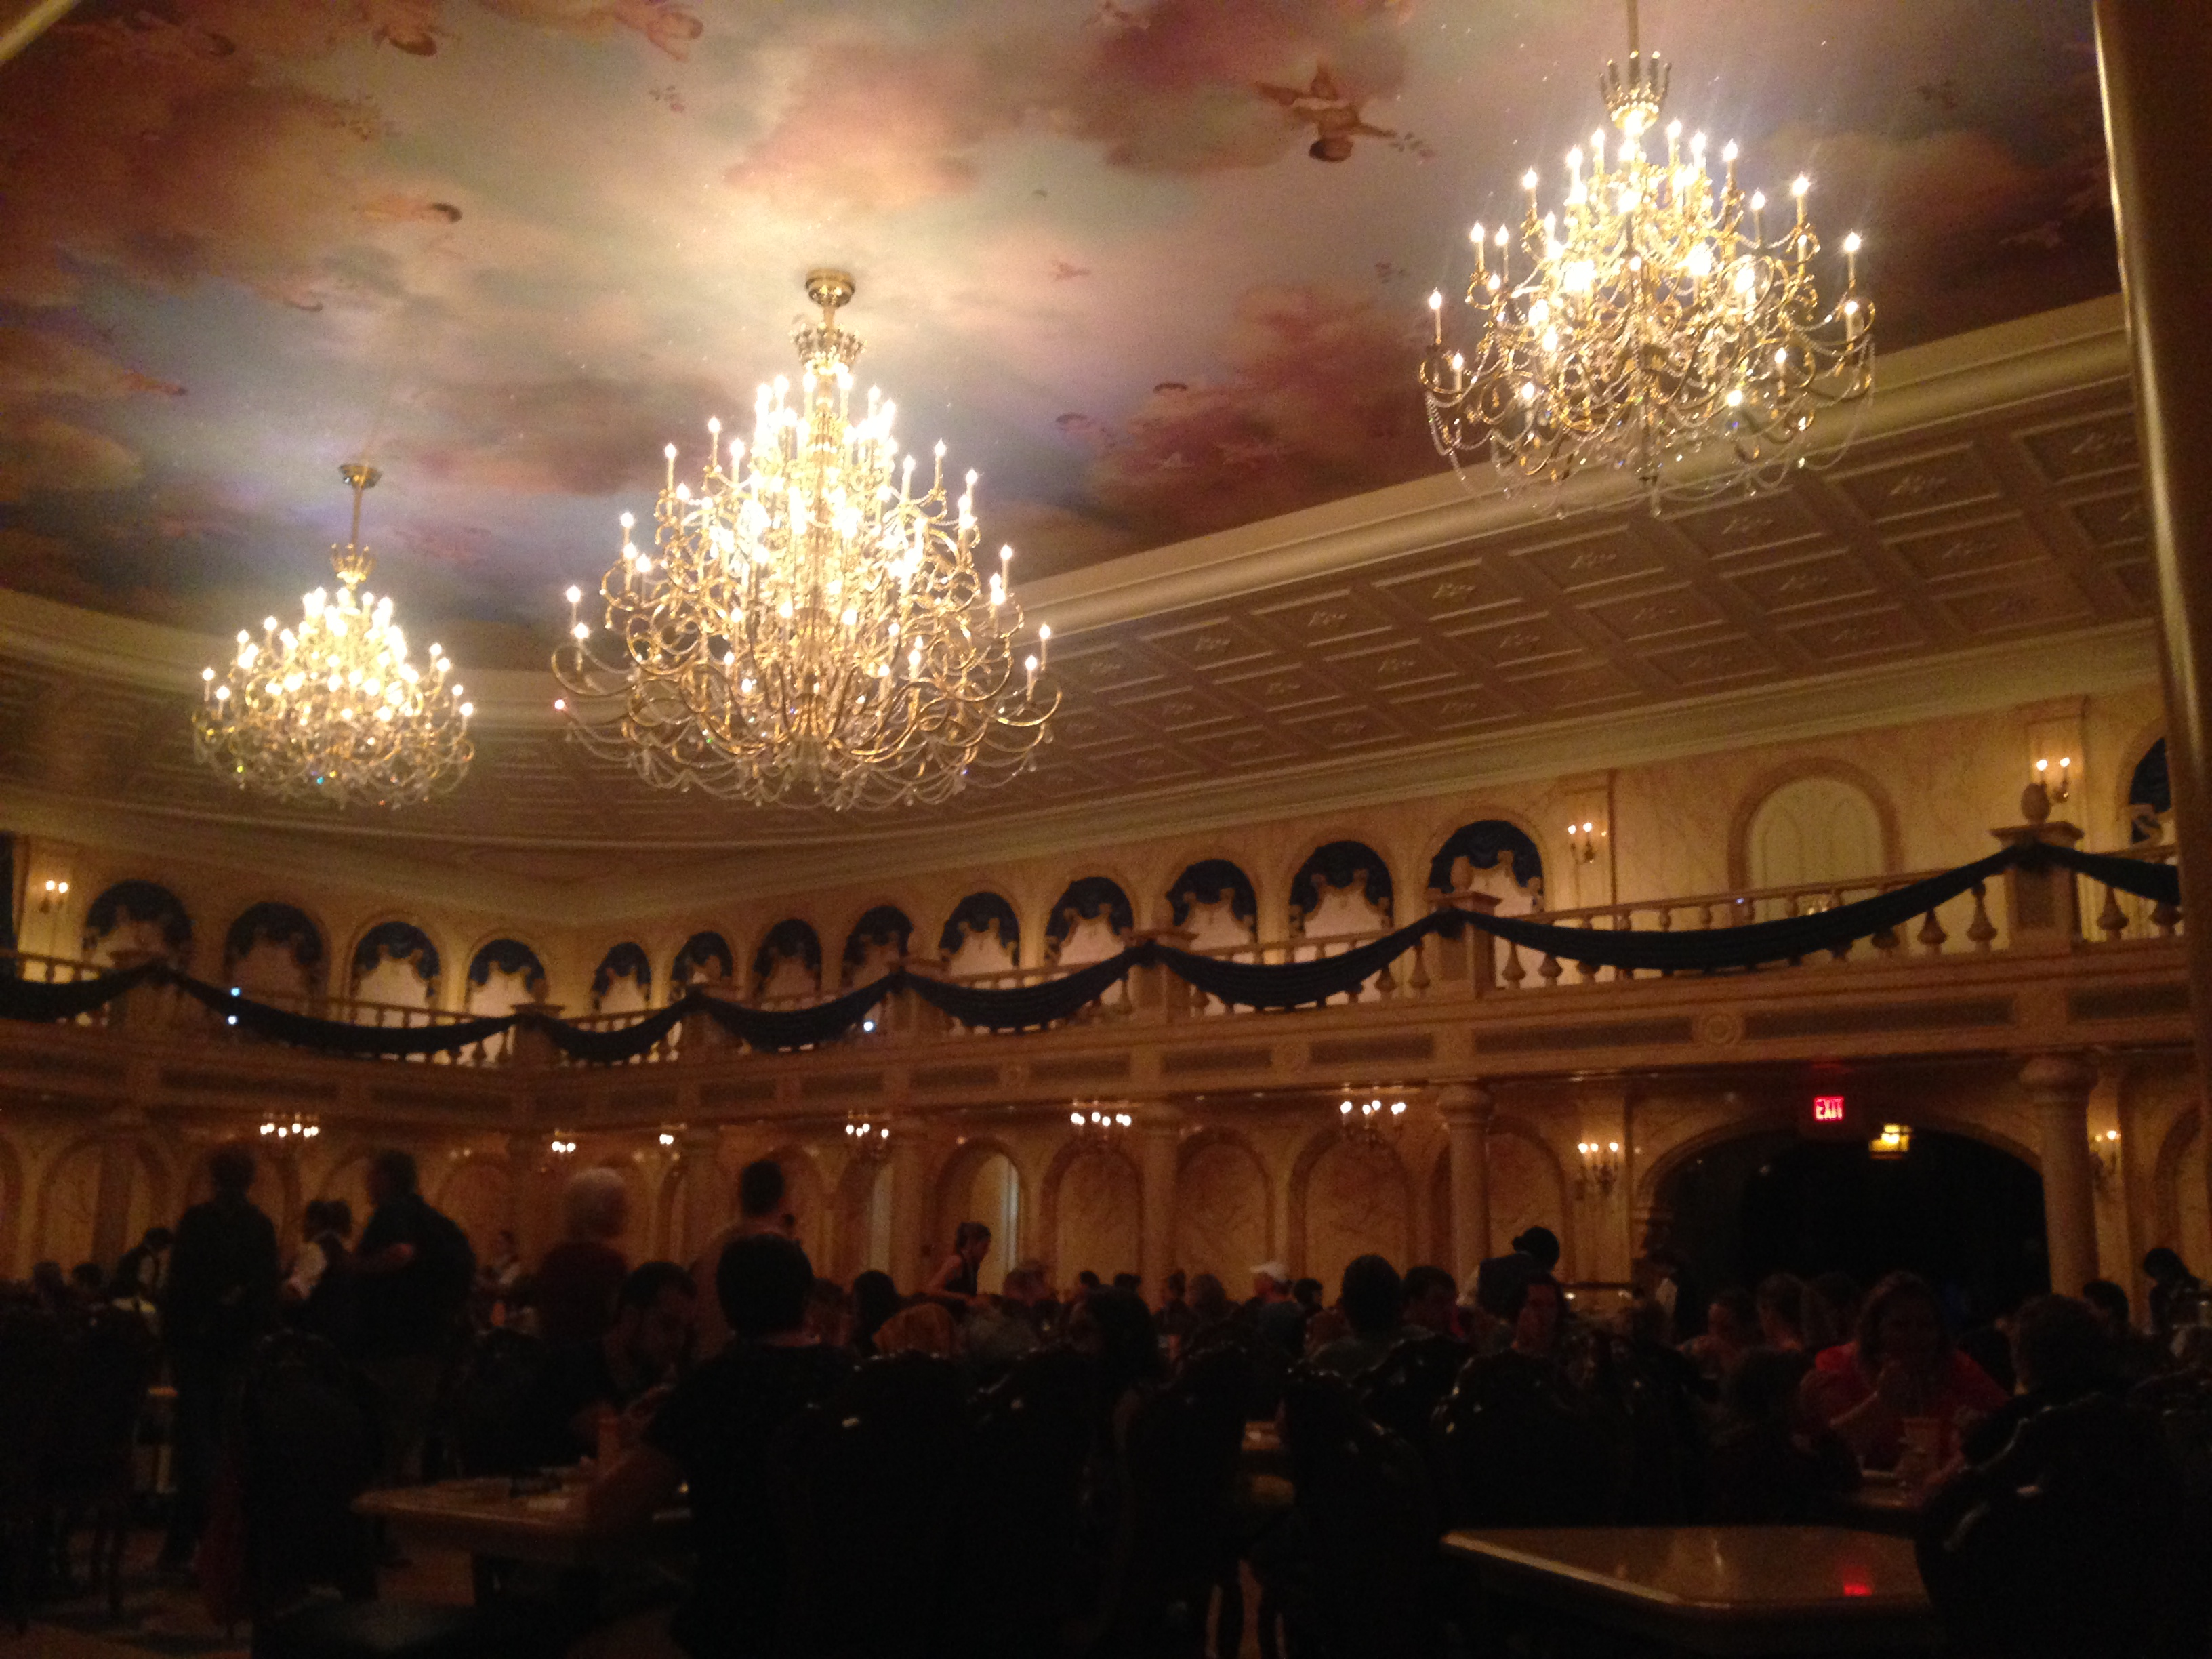 Lunch at Be Our Guest in the Ballroom!